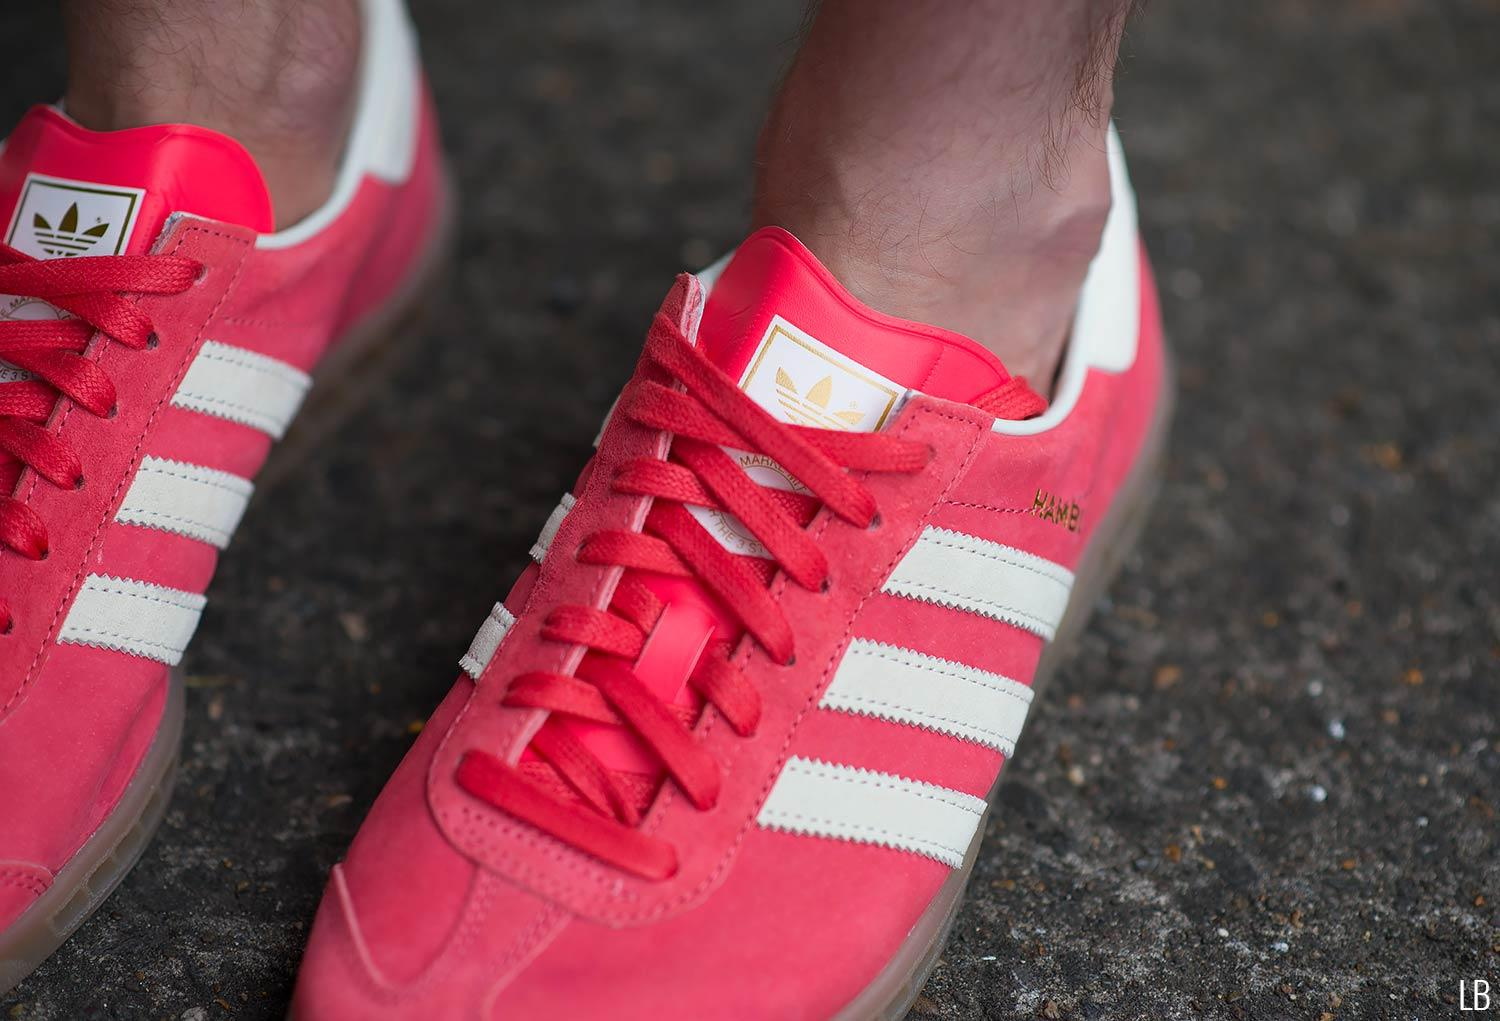 Men's Adidas Hamburg Shock Red Gum Trainers Sneakers Review 4